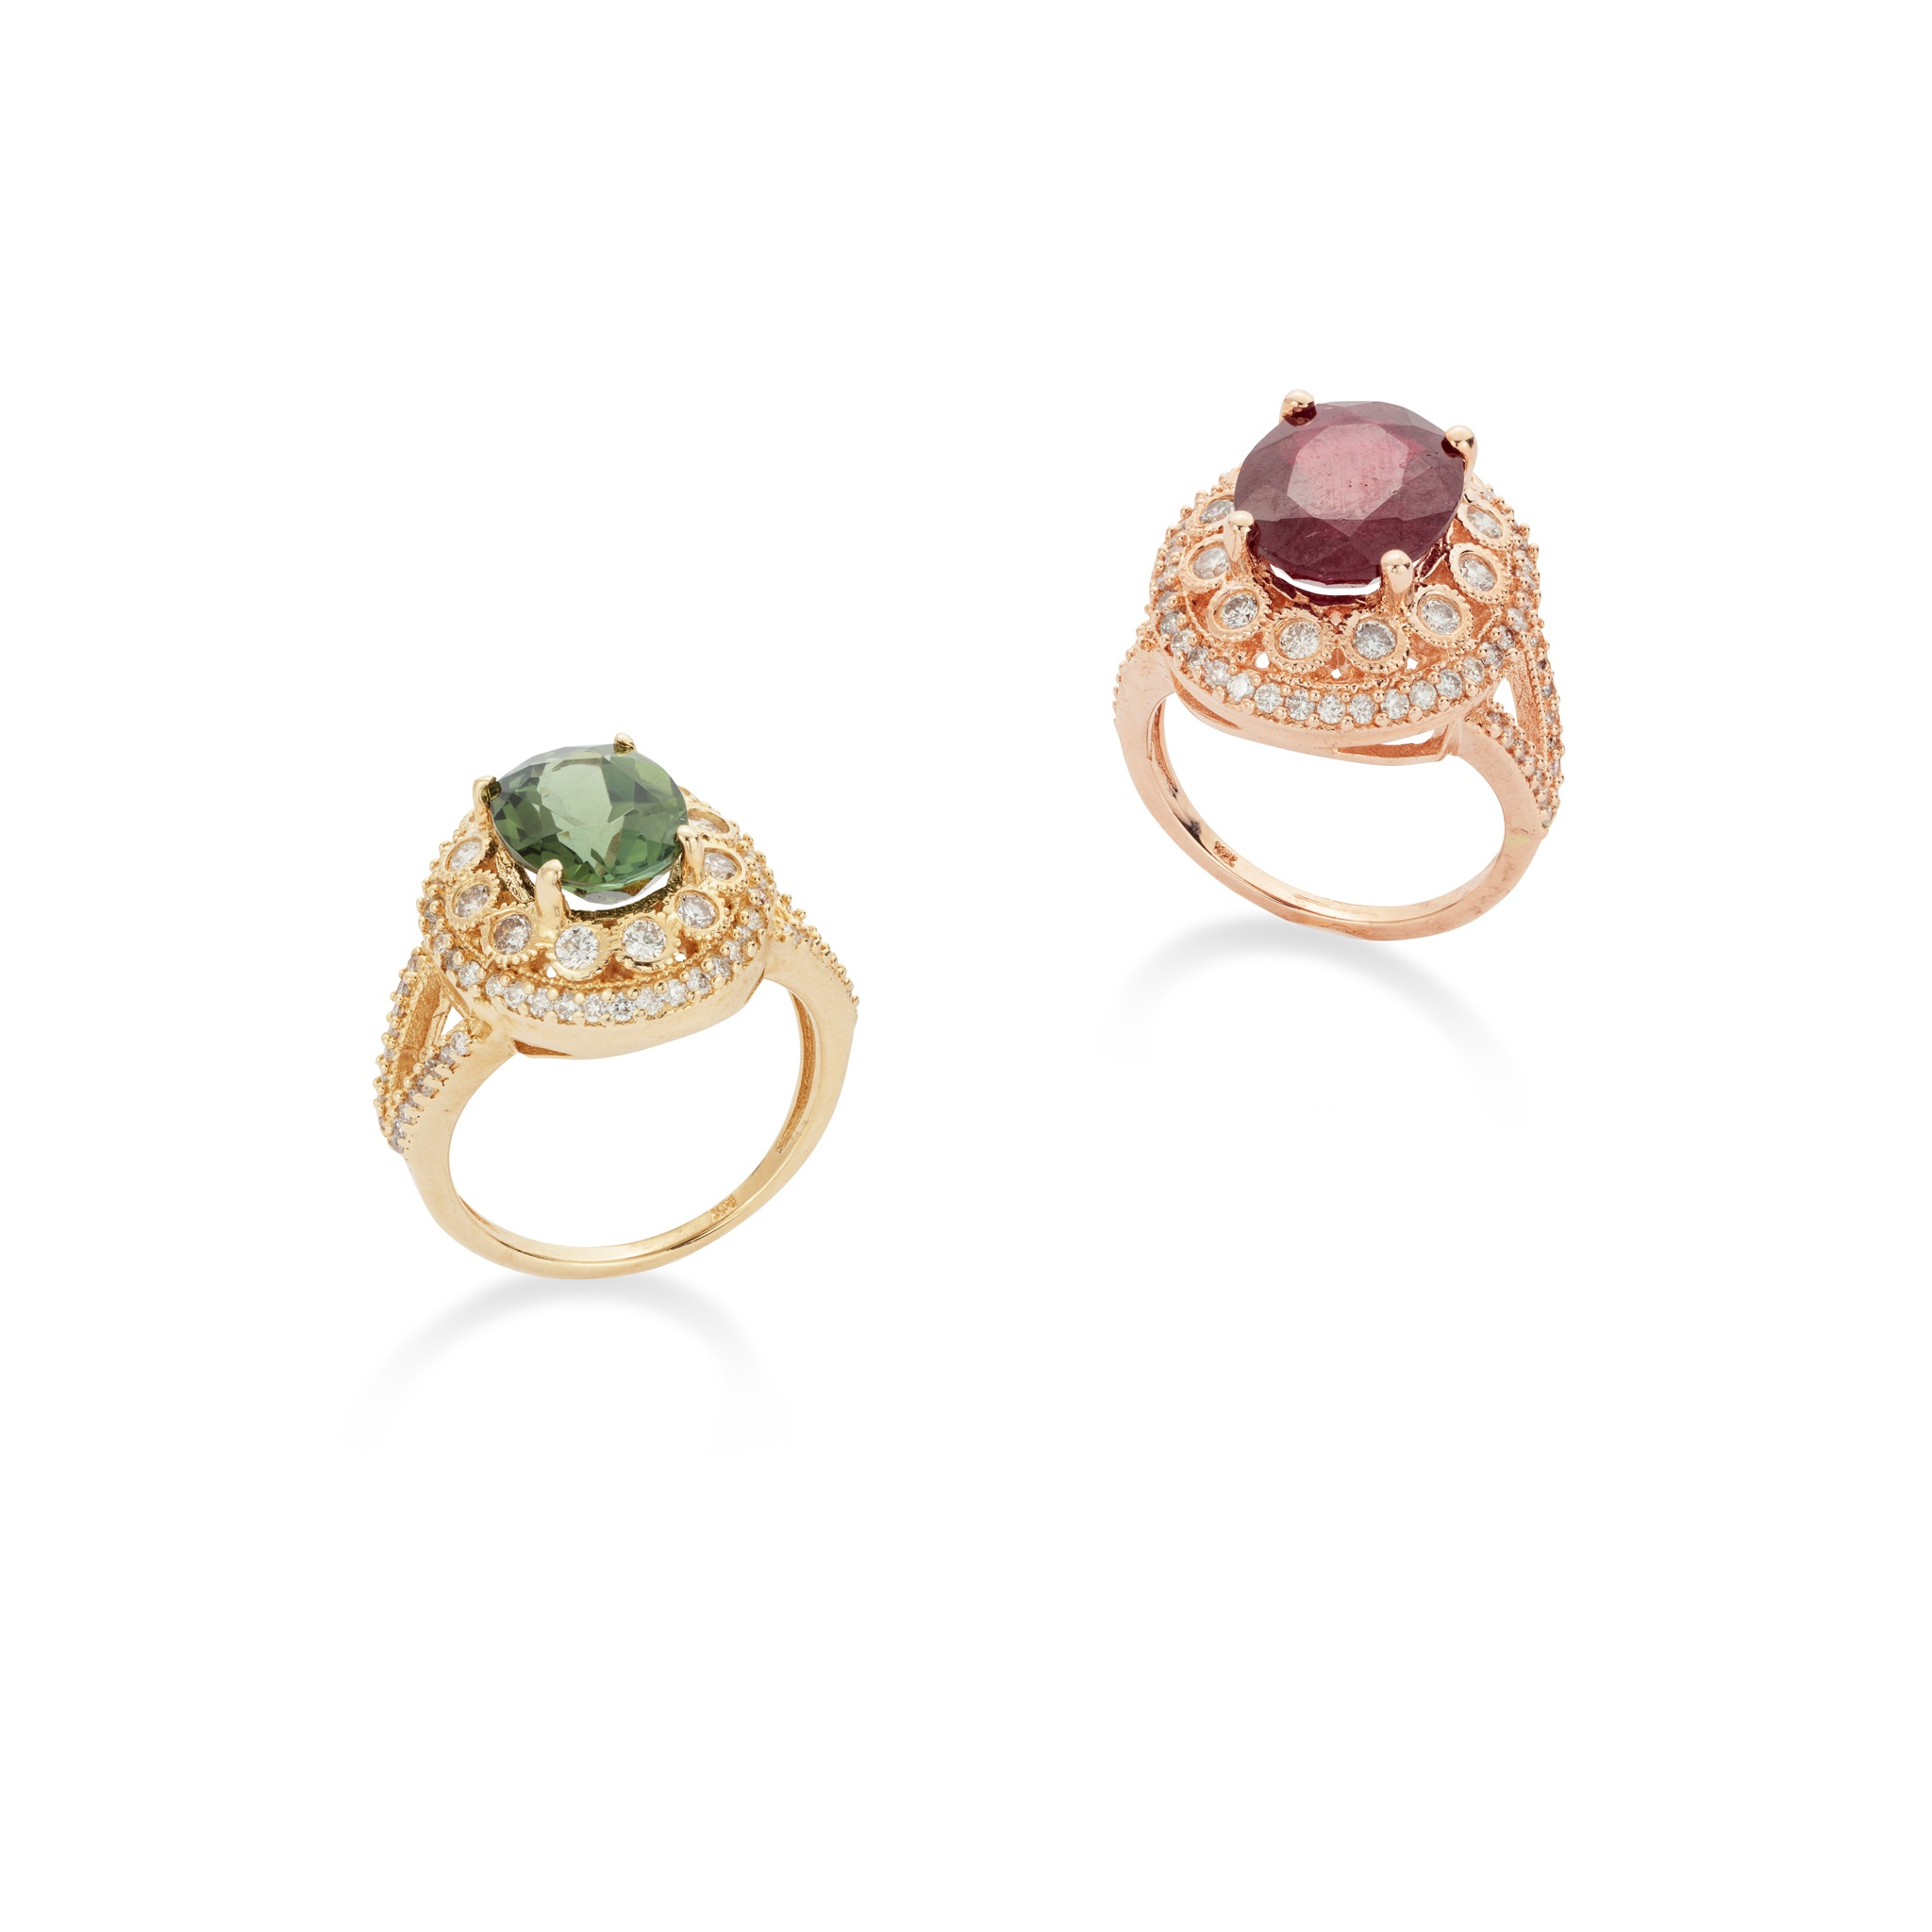 Two diamond and gem-set rings ring The oval-cut green tourmaline, to a brilliant-cut diamond